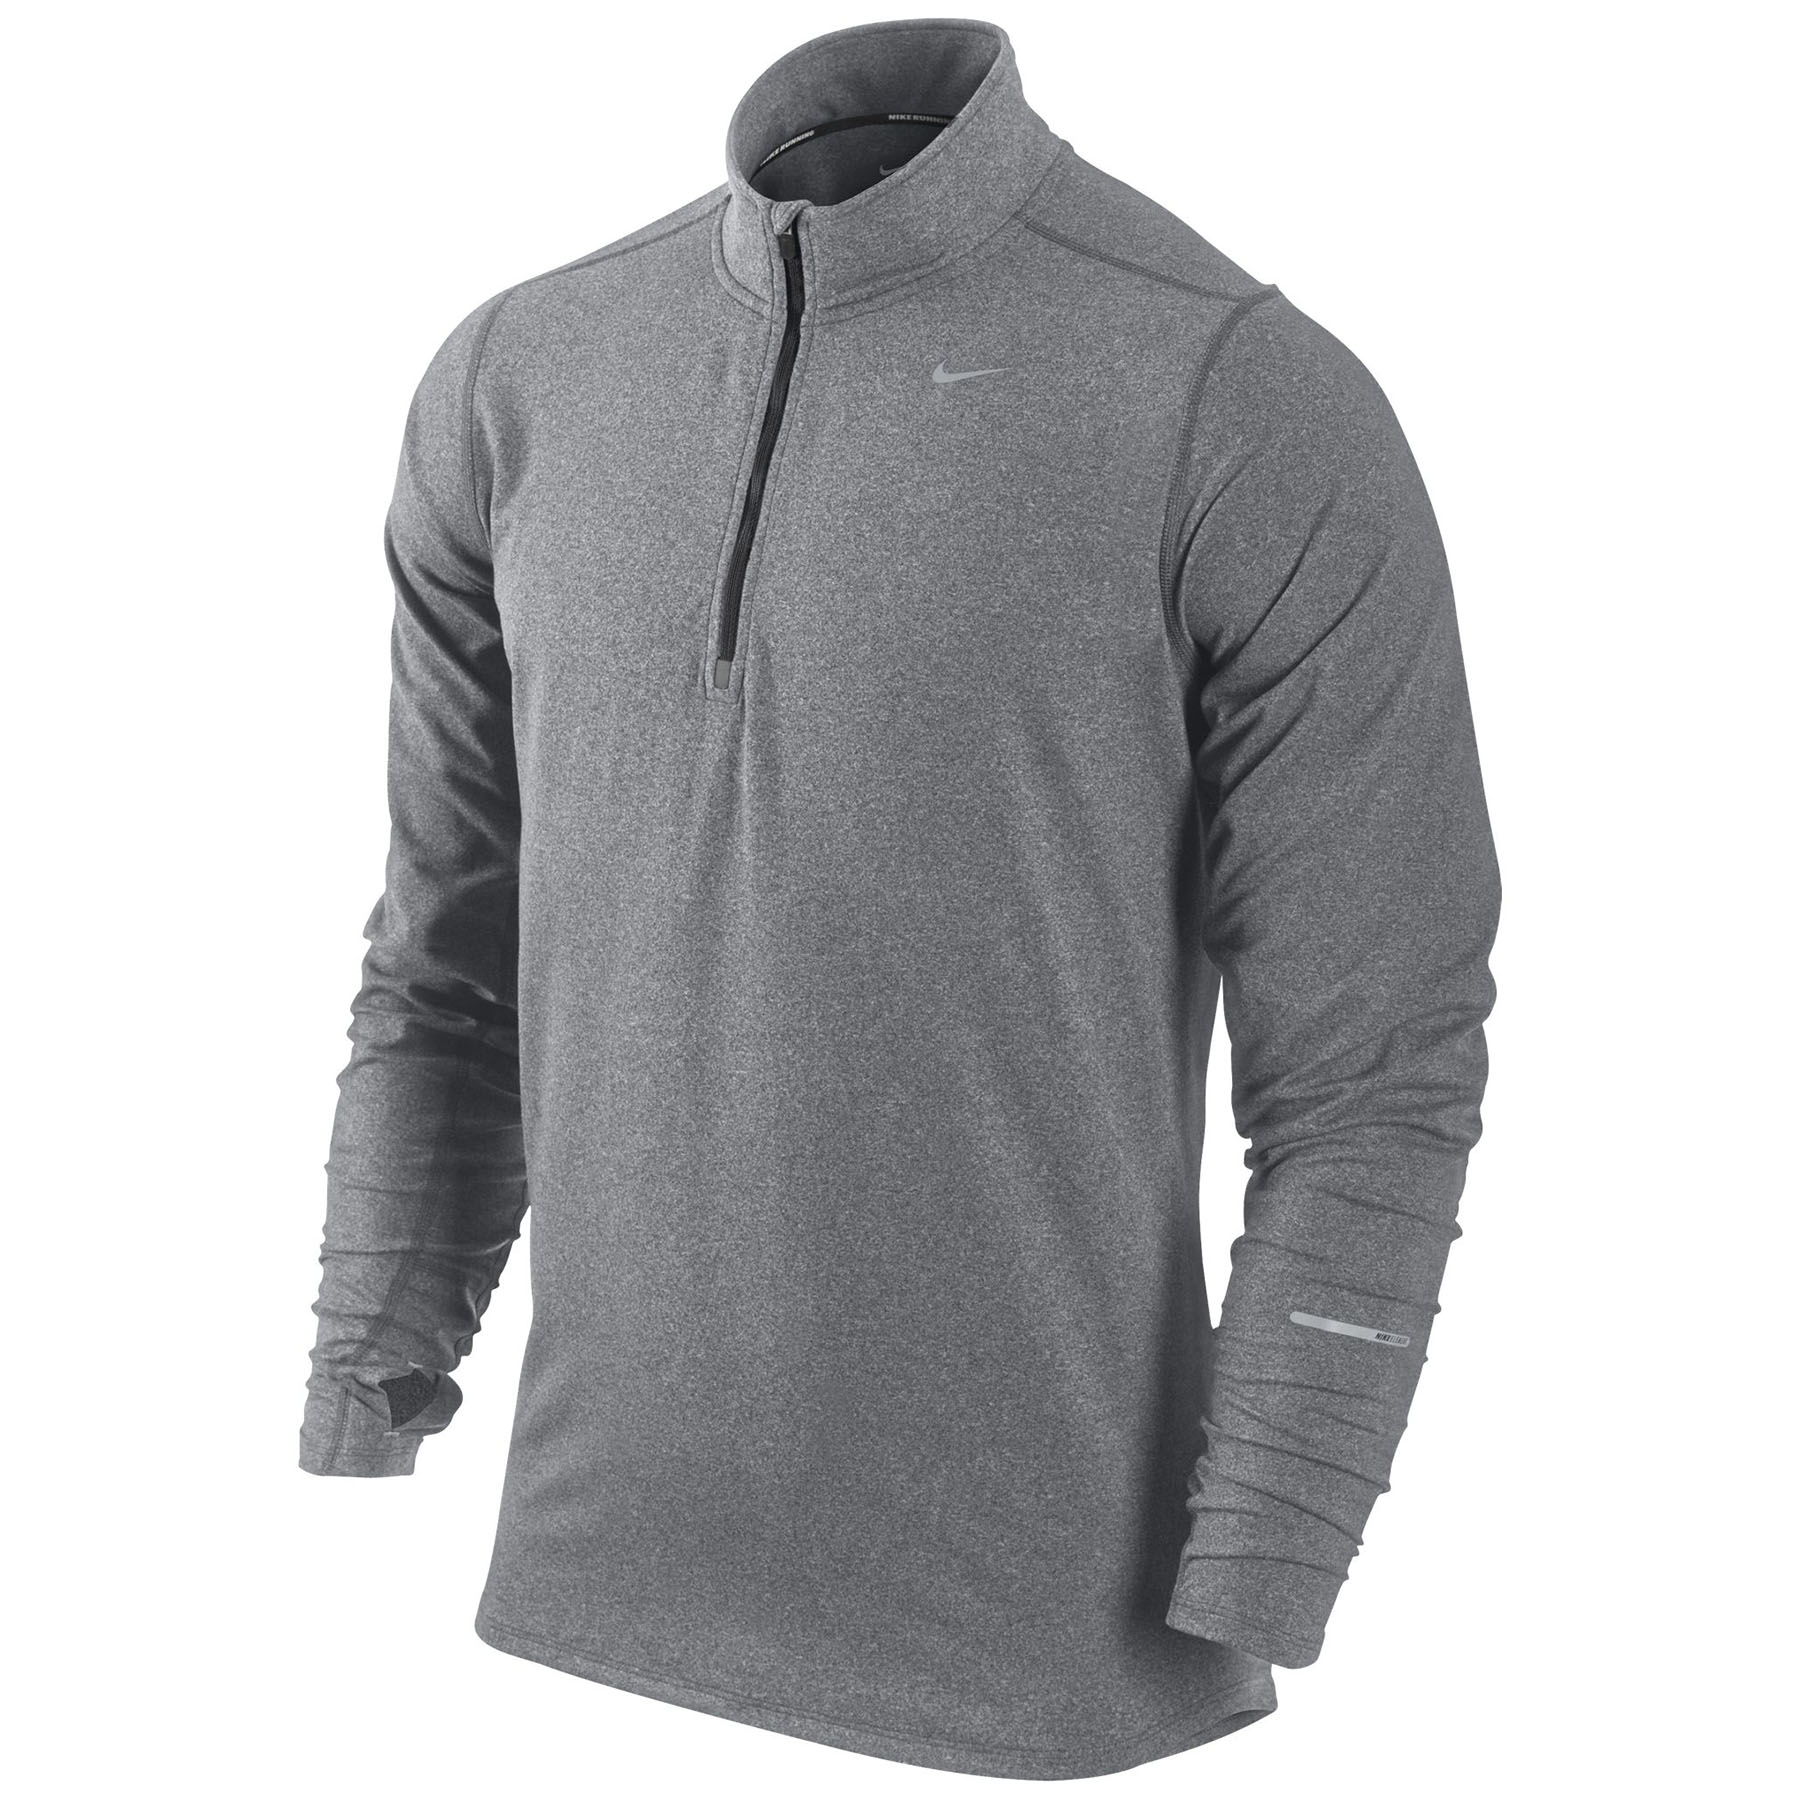 Nike Element Half Zip Top Dk Grey